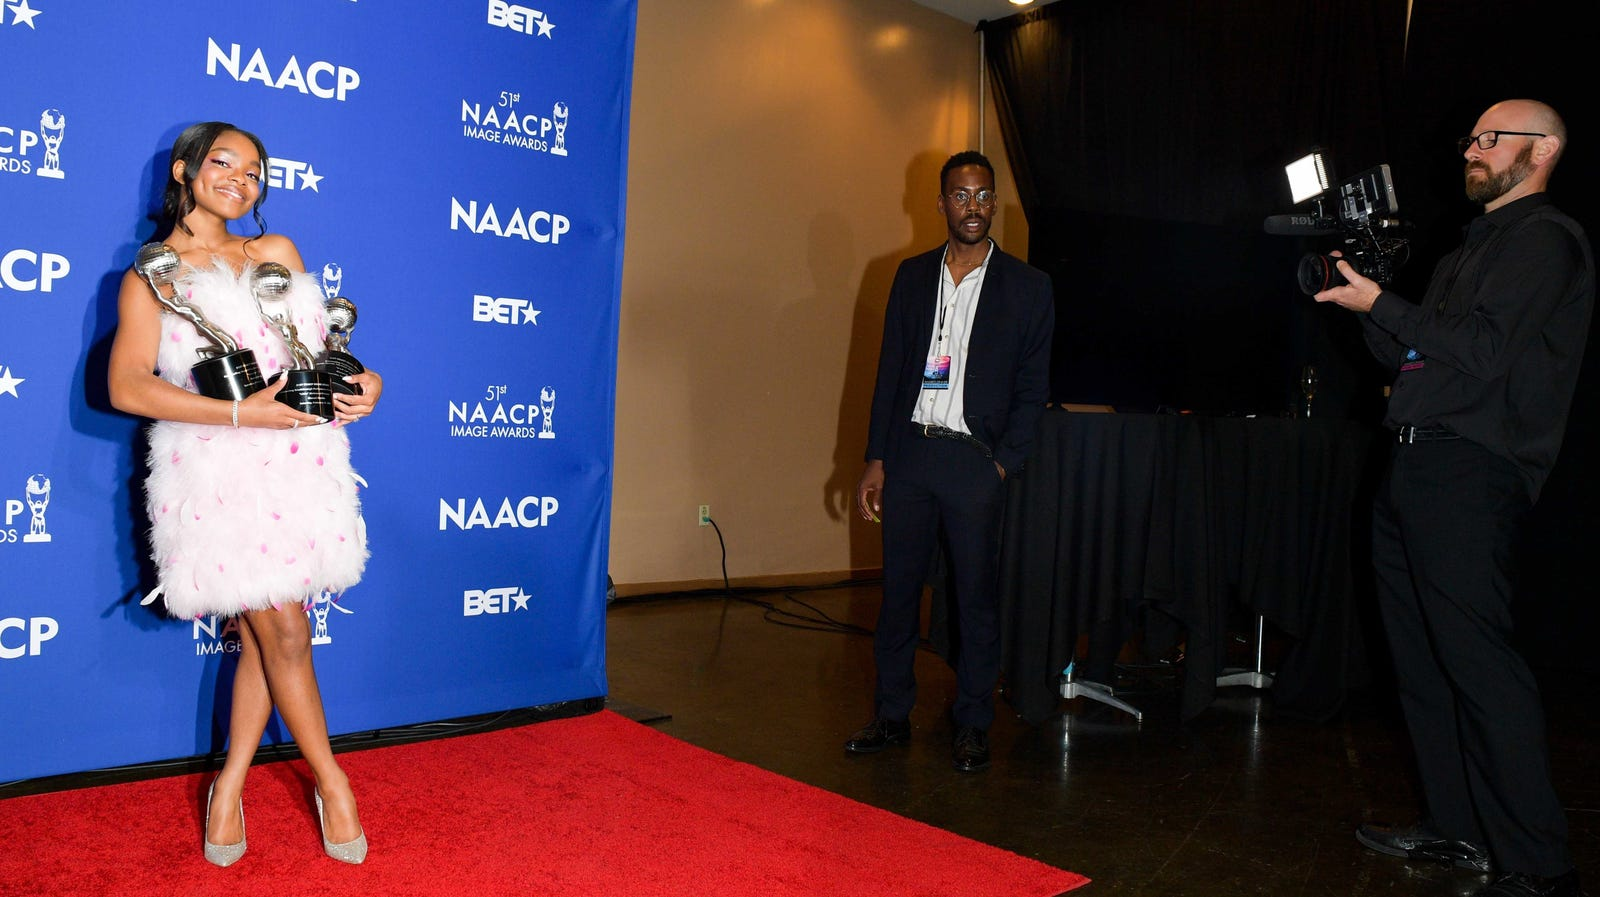 Marsai Martin at the 51st NAACP Image Awards on February 21, 2020, in Hollywood, California.